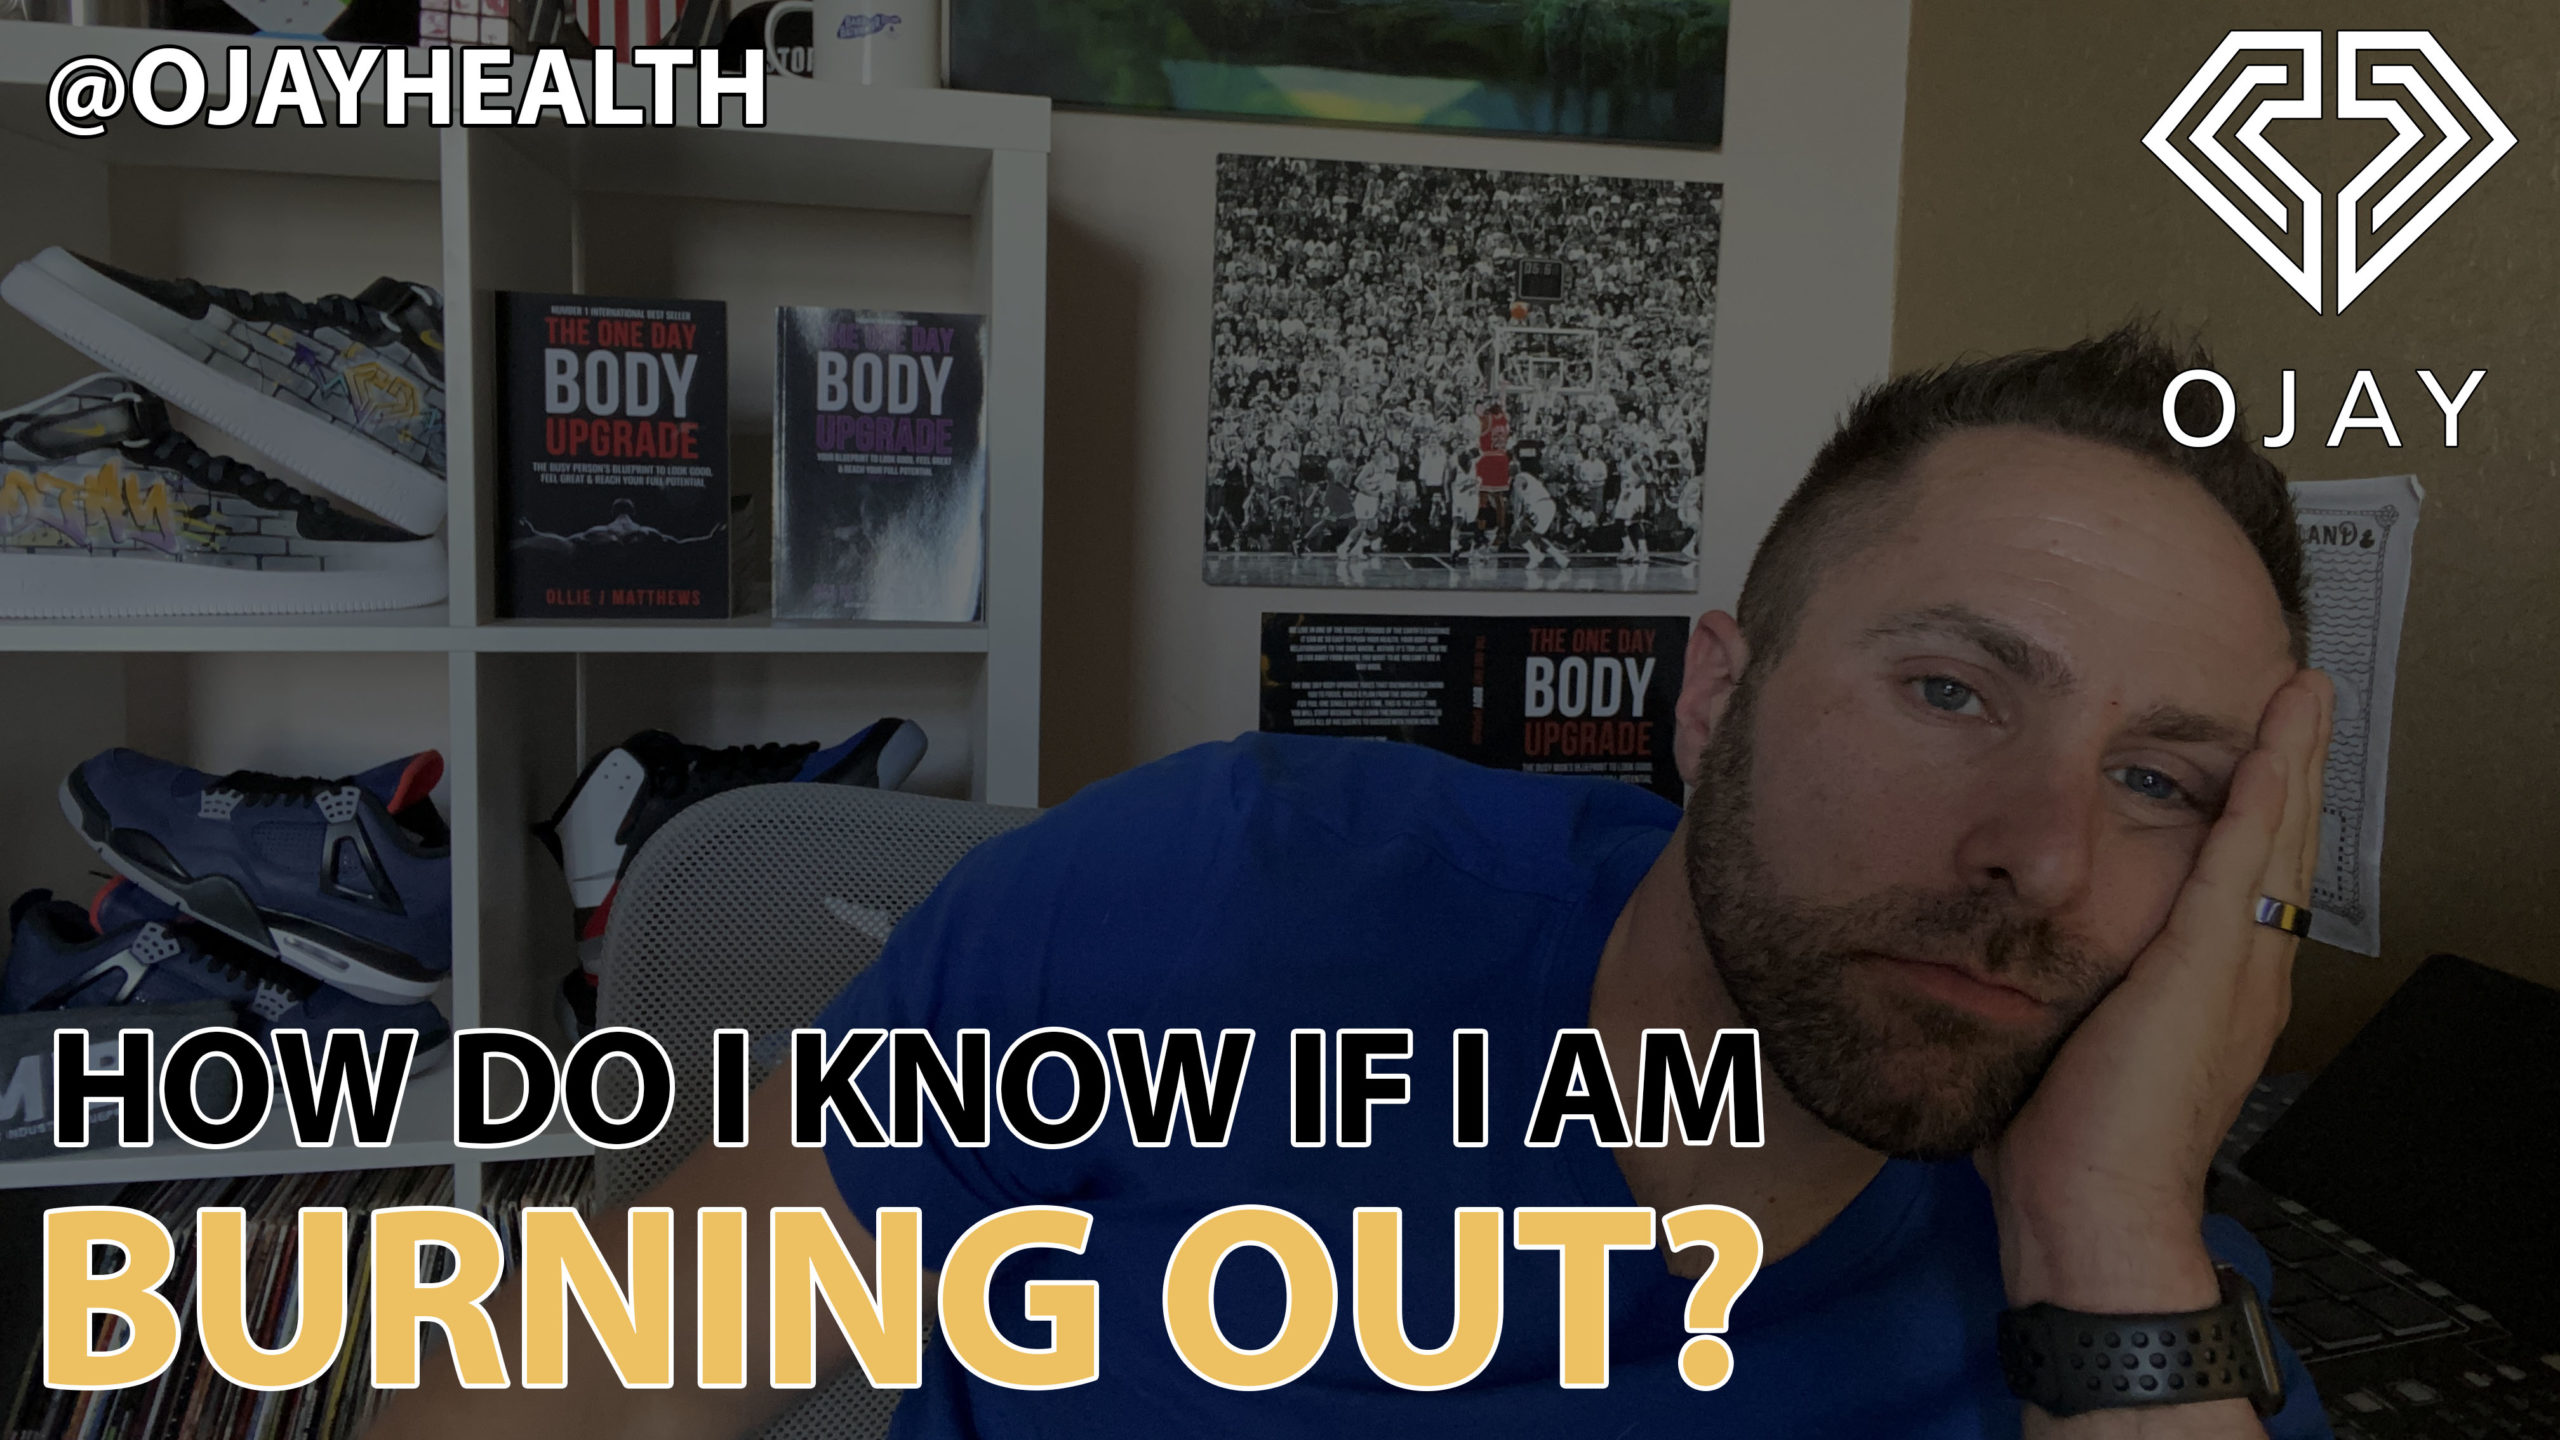 How Do I Know If I Am Burning Out?